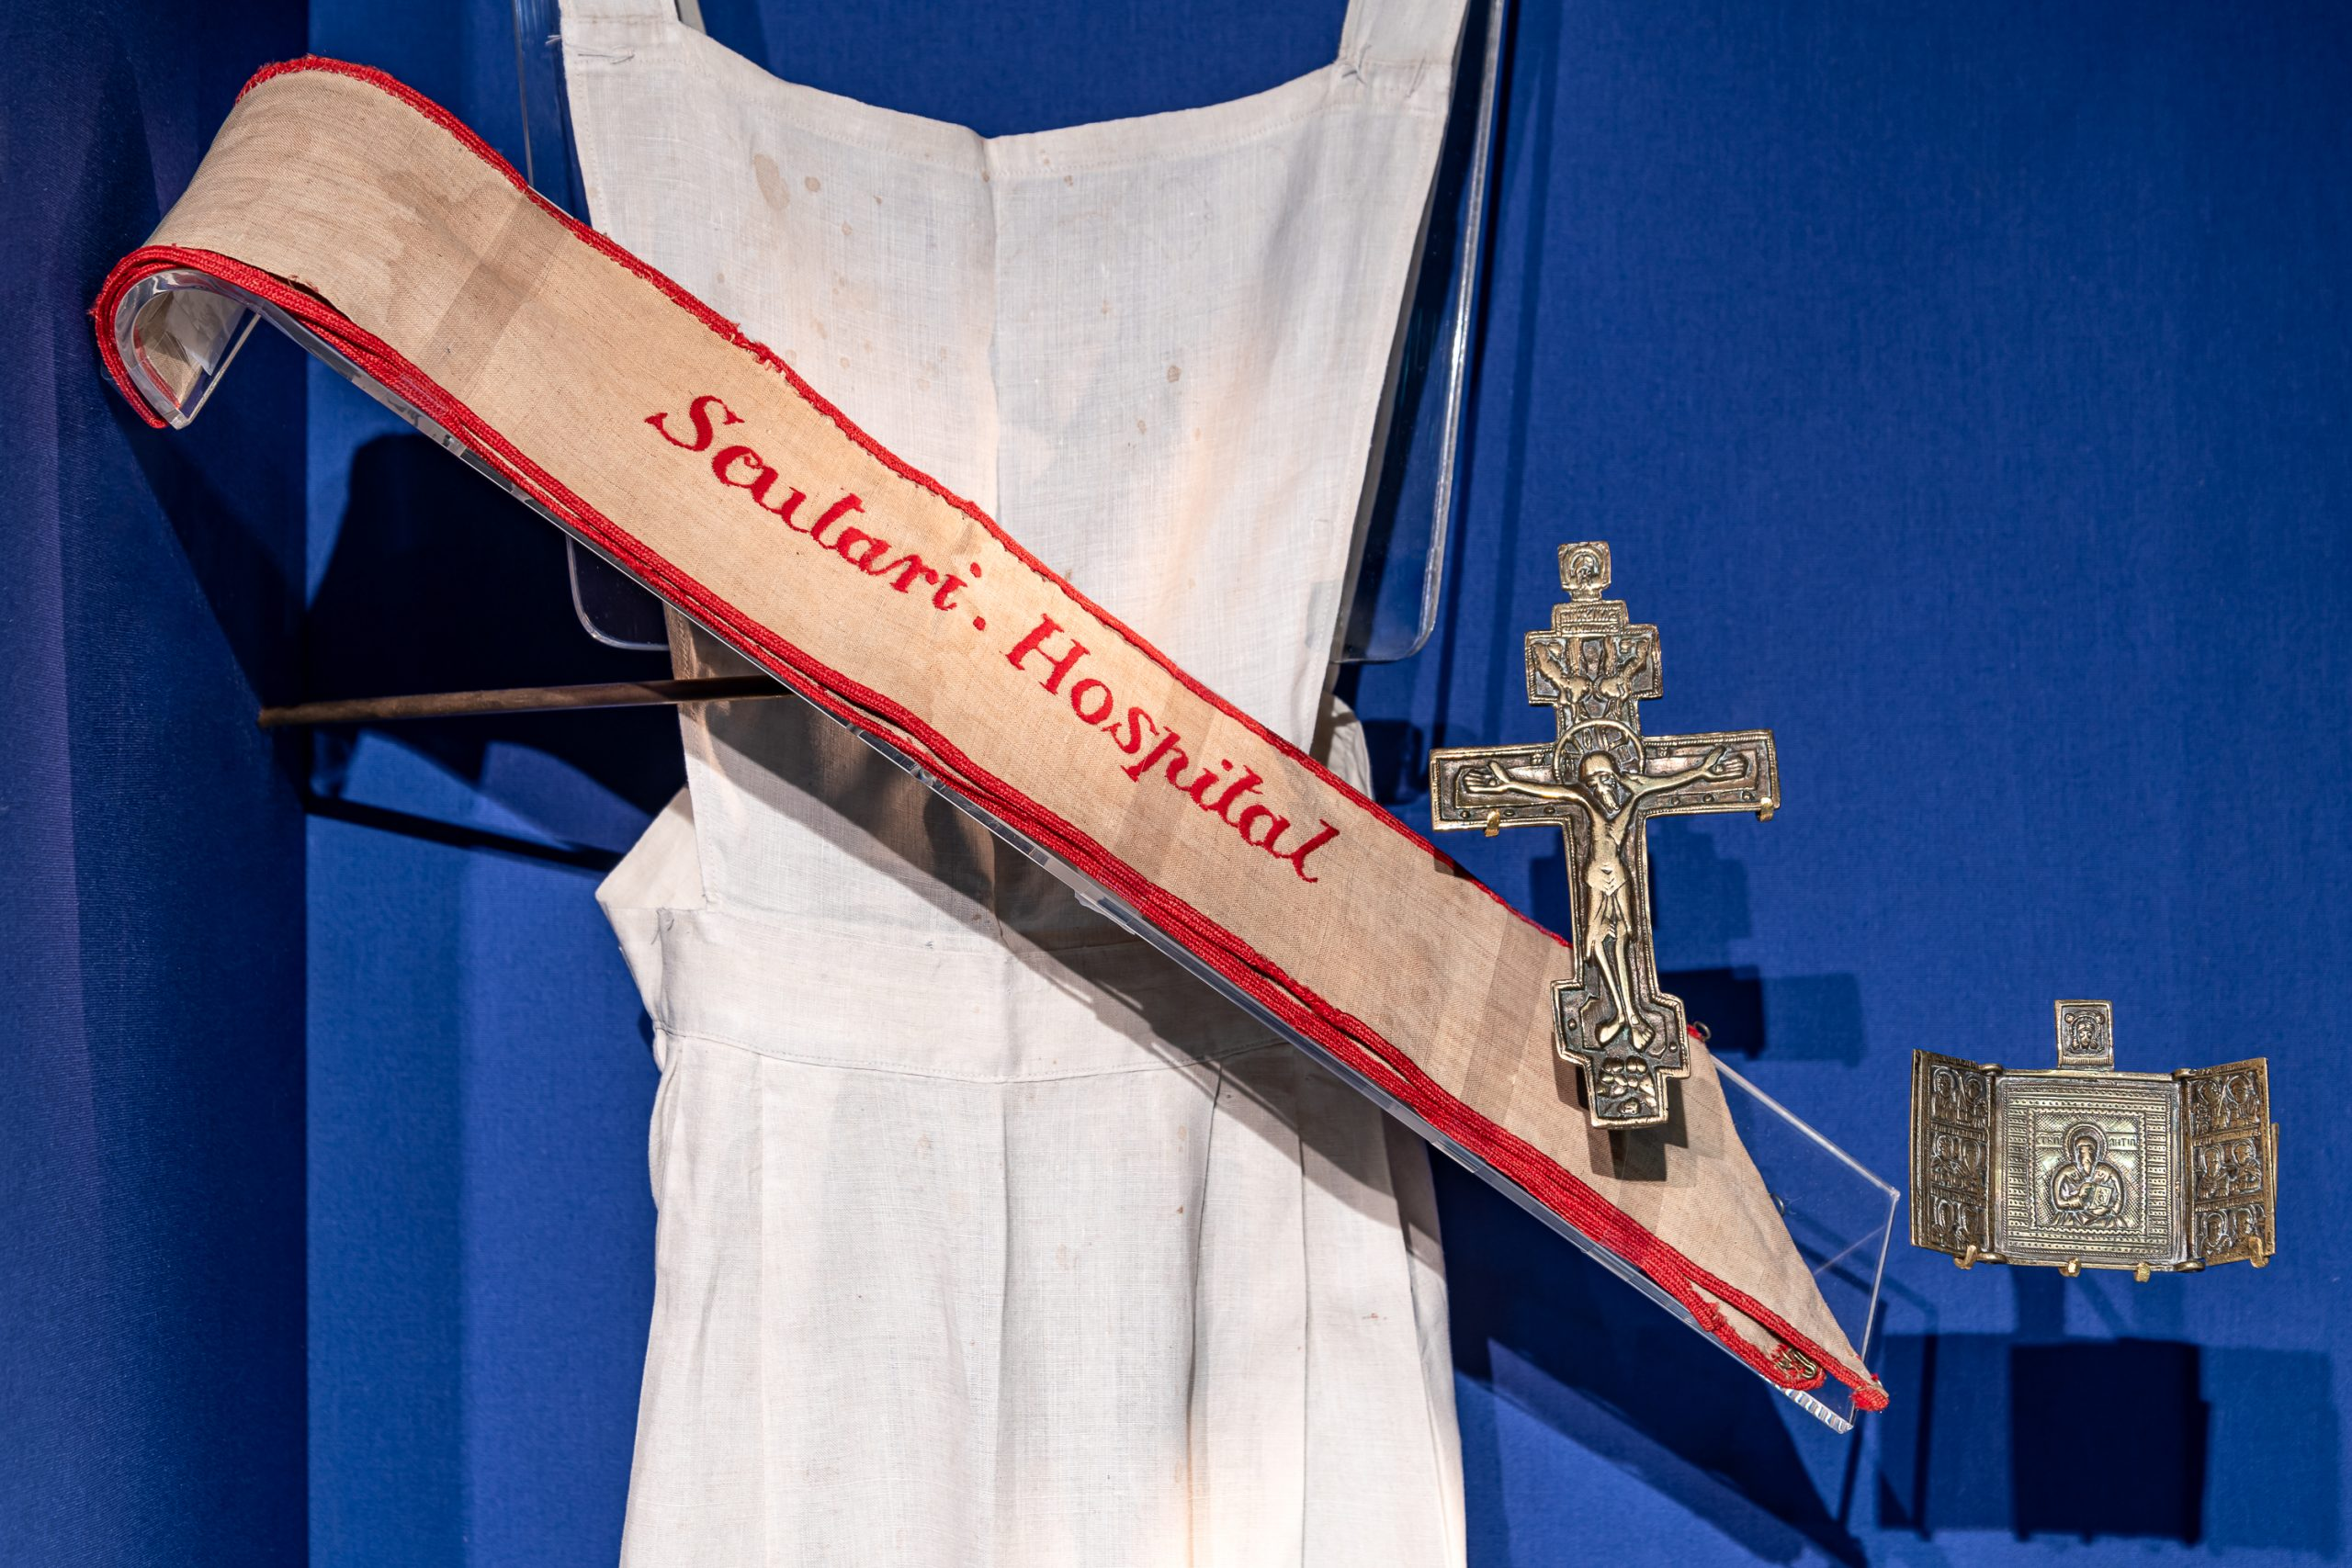 The Scutari uniform apron and sash designed by Florence Nightingale